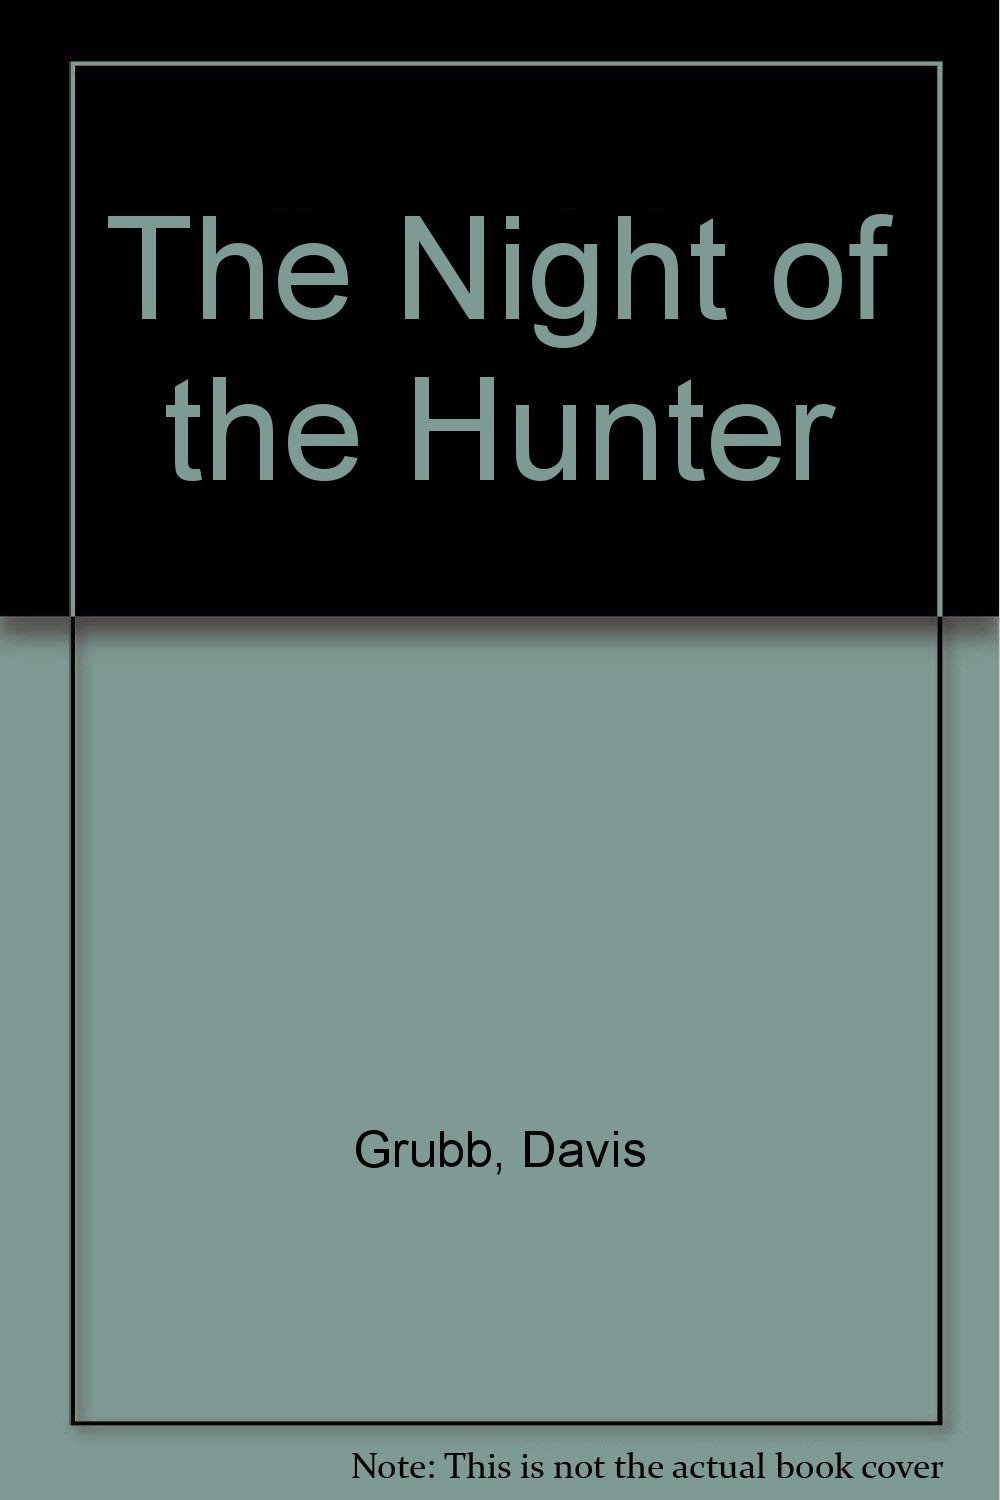 character analysis the preacher from davis grubbs the night of the hunter Adapted by james agee from a novel by davis grubb, the night of the hunter represented legendary actor charles laughton's only film directing effort.